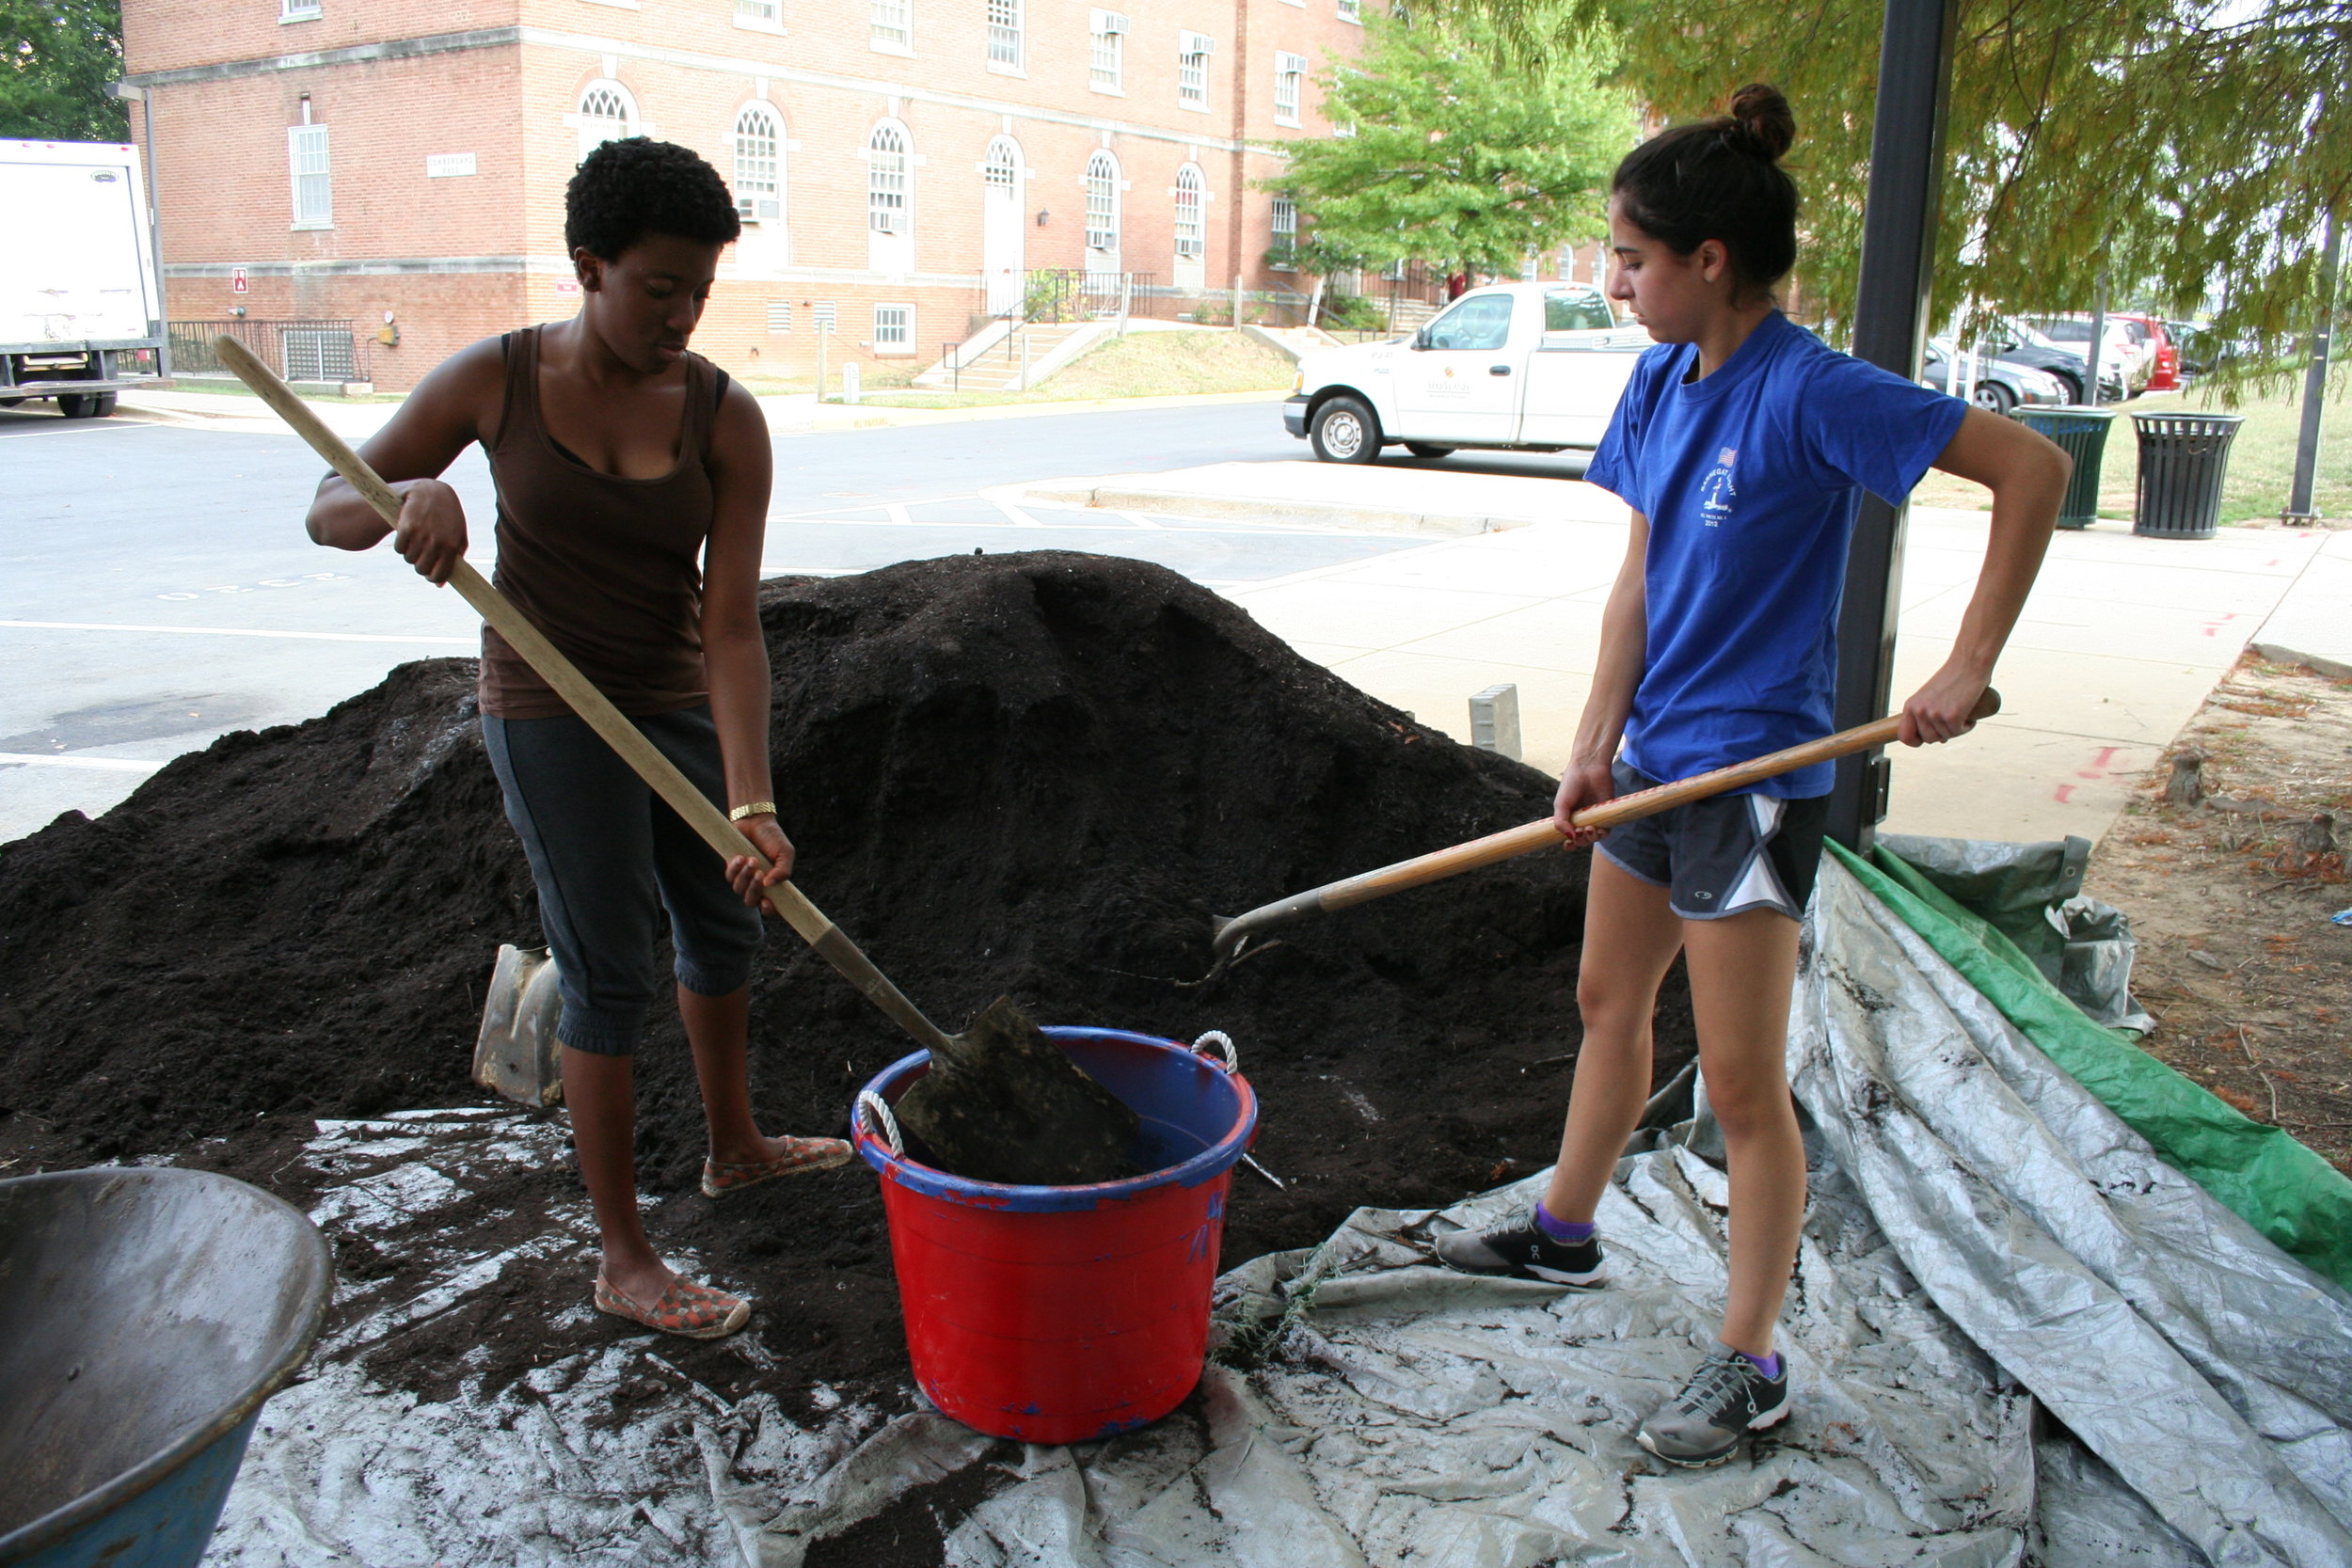 Asamaniwa Padi-Adjirackor, left, a sophomore agriculture and resource economics major and Claudia Romeo, right, a freshman elementary education major, begin their work hour at the Public Health Garden by shoveling and transporting compost provided by campus dining halls to the green space on Sept. 28, 2015. Transporting the entire heap to the garden was the goal of this work hour. Each club meeting has a different objective.